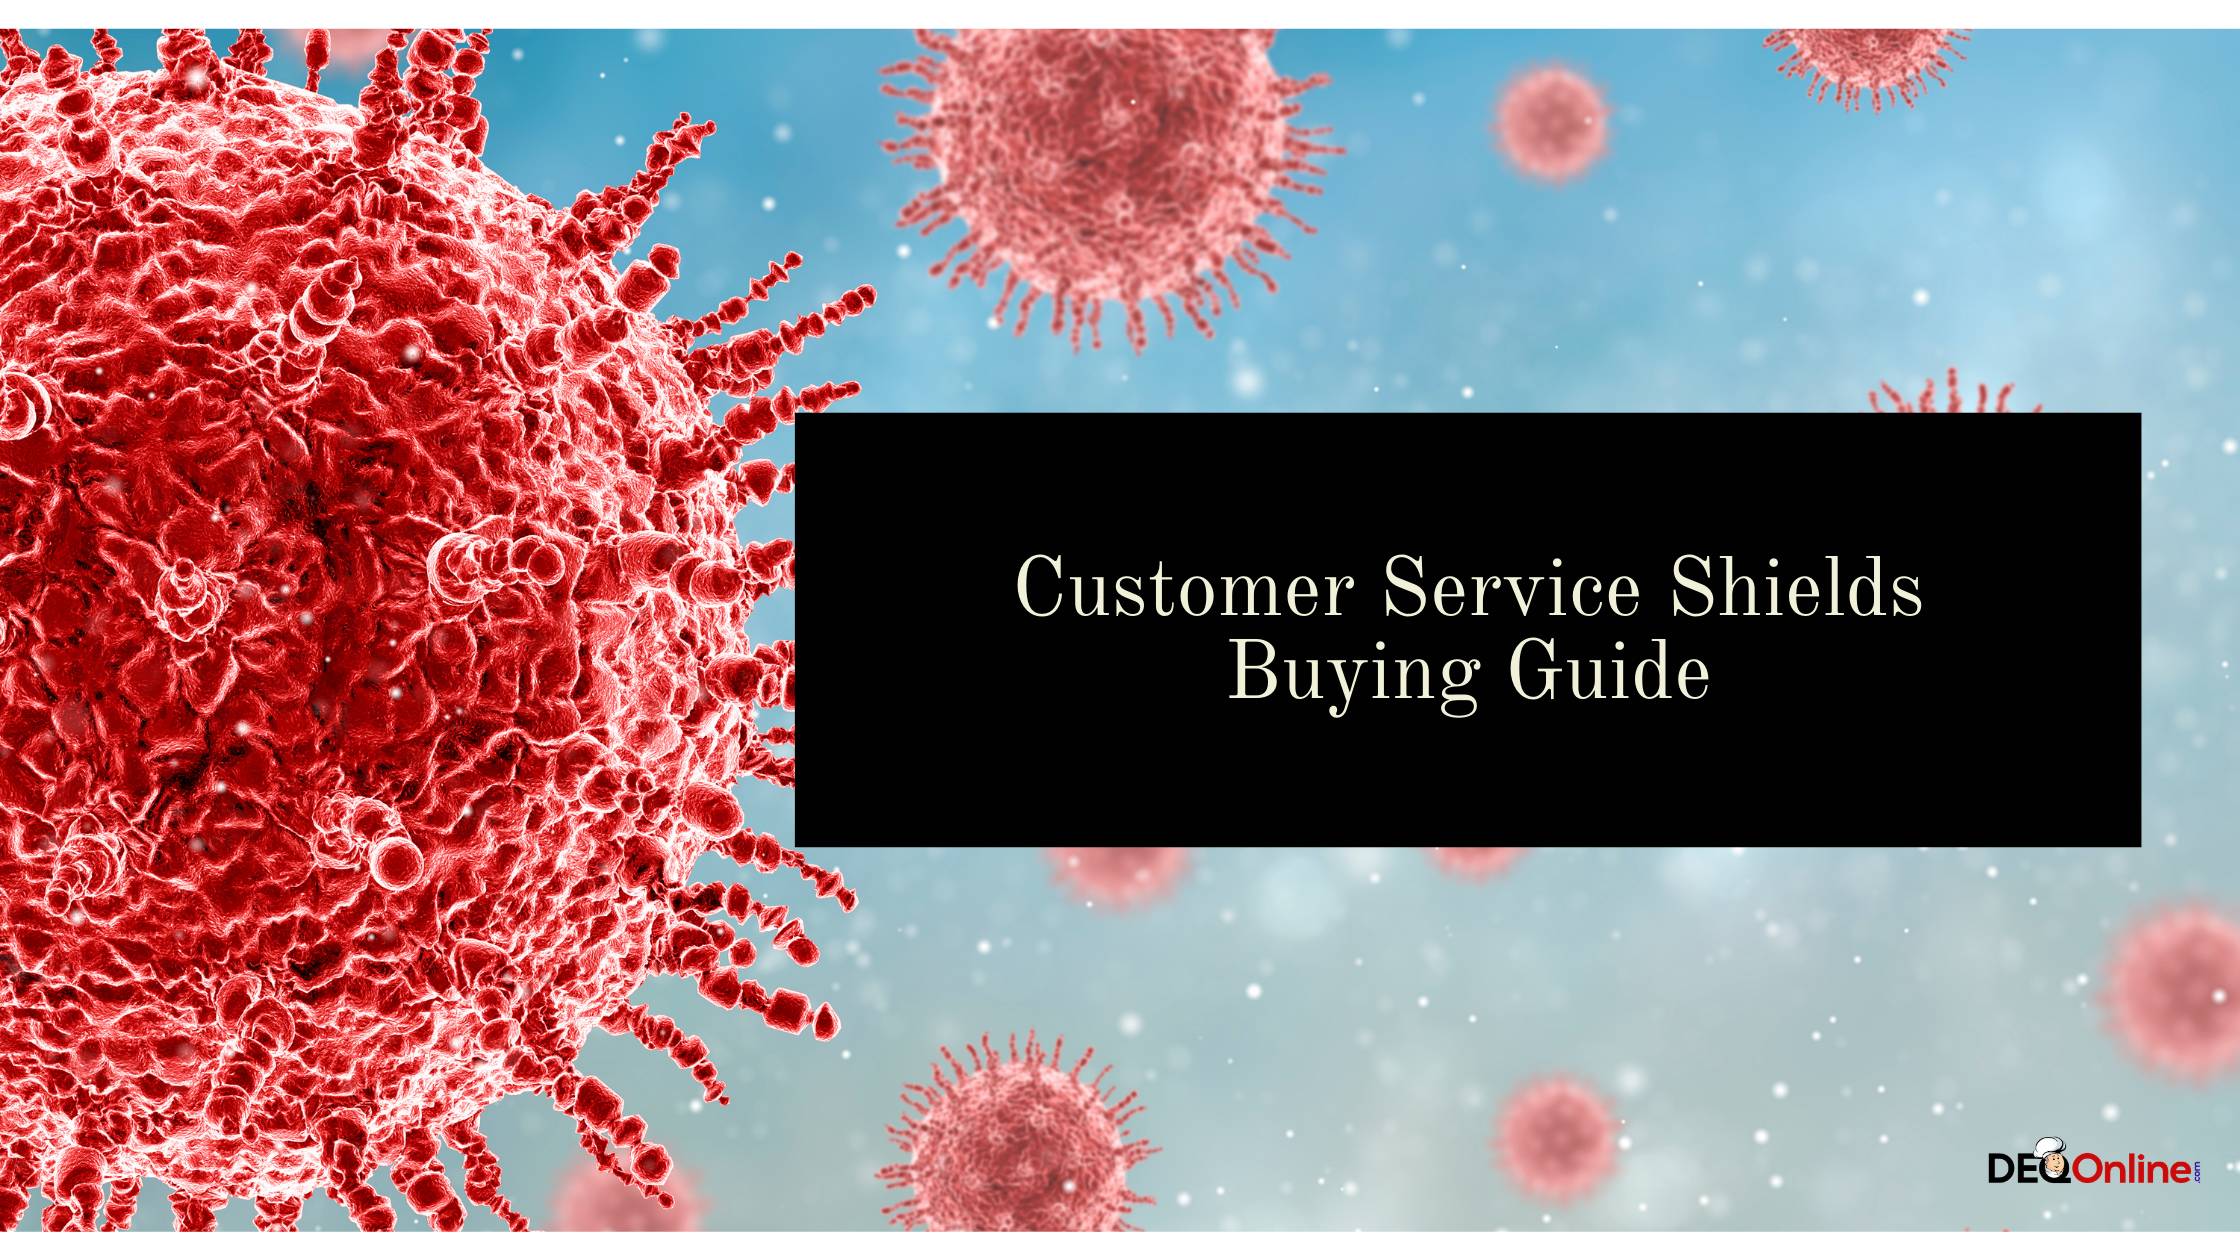 Customer Service Shields Buying Guide